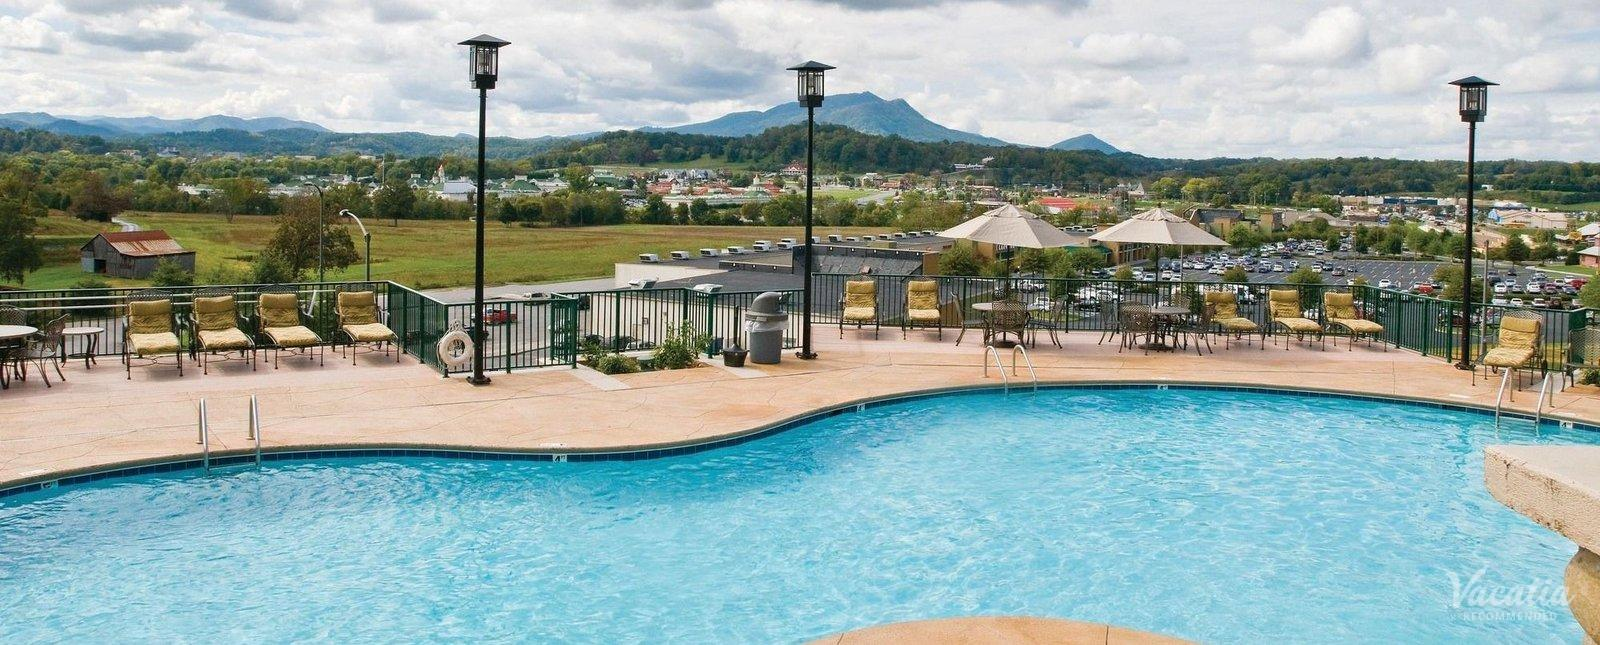 Wyndham Smoky Mountains Resort Pools